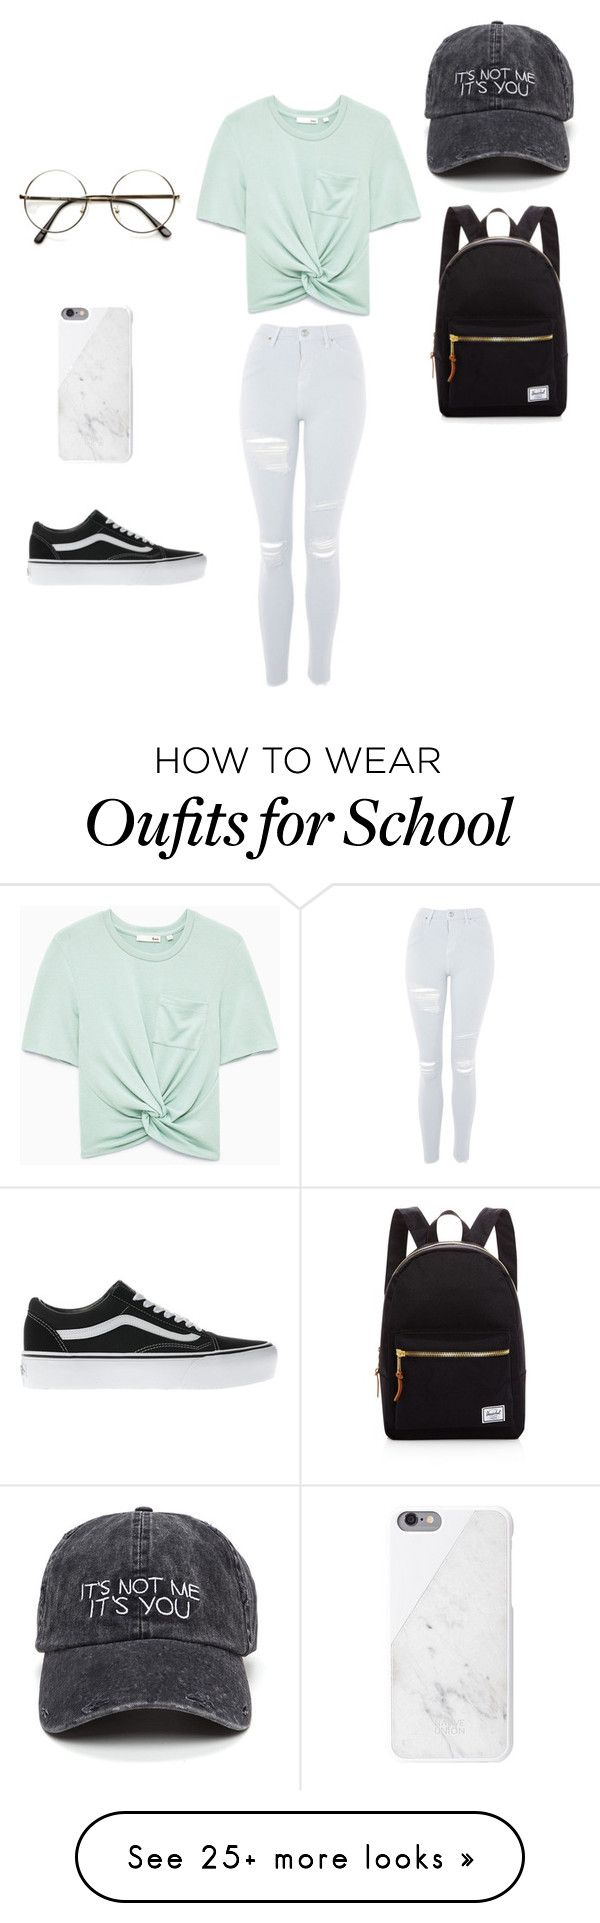 """""""Back to school?"""" by darlingdream on Polyvore featuring Topshop, Vans and Herschel Supply Co."""